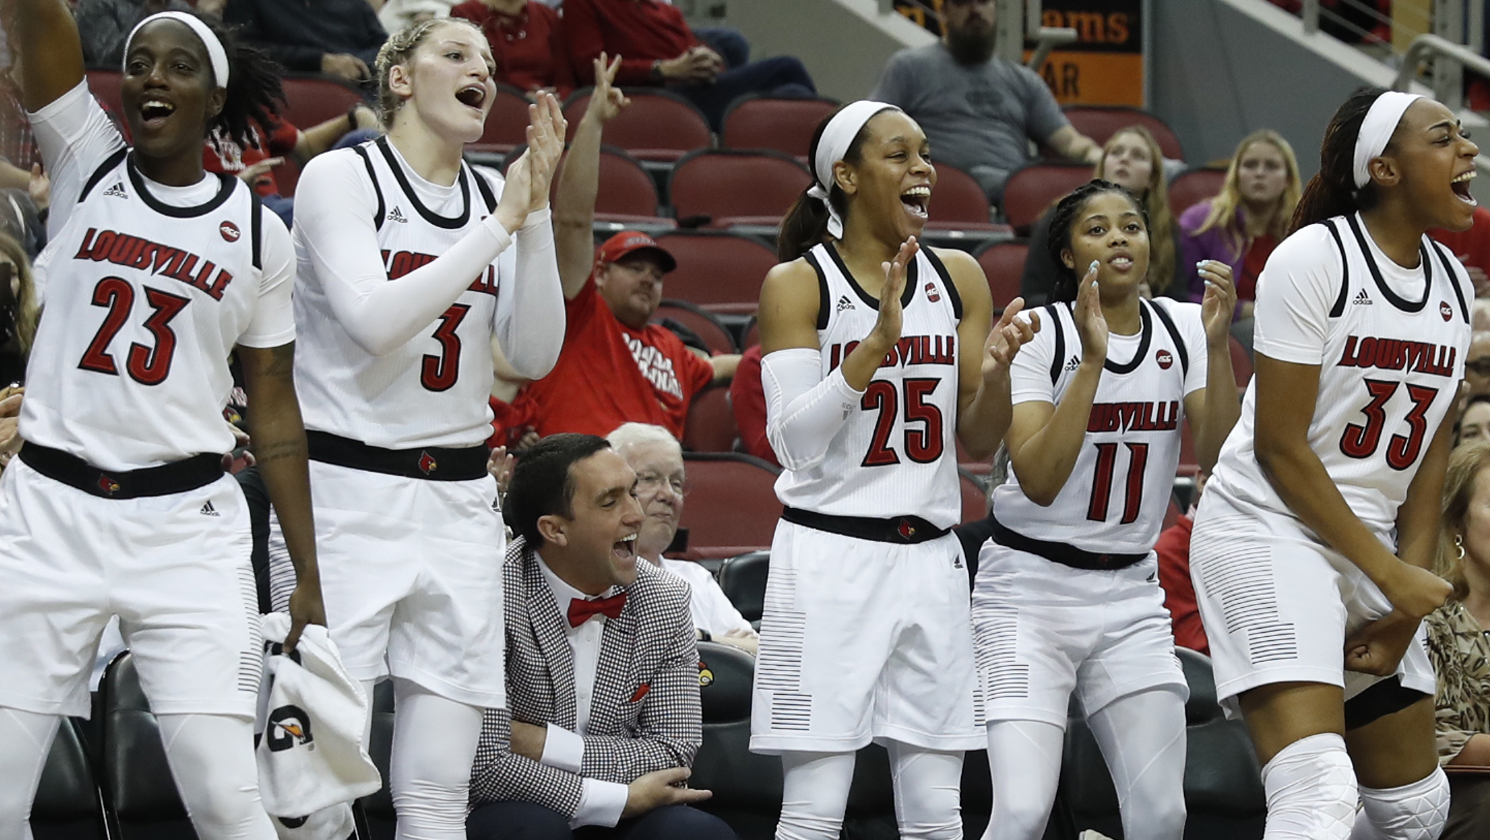 Undefeated Louisville takes over top spot in Sport Tours International/Hoopfeed NCAA DI Top 25 Poll